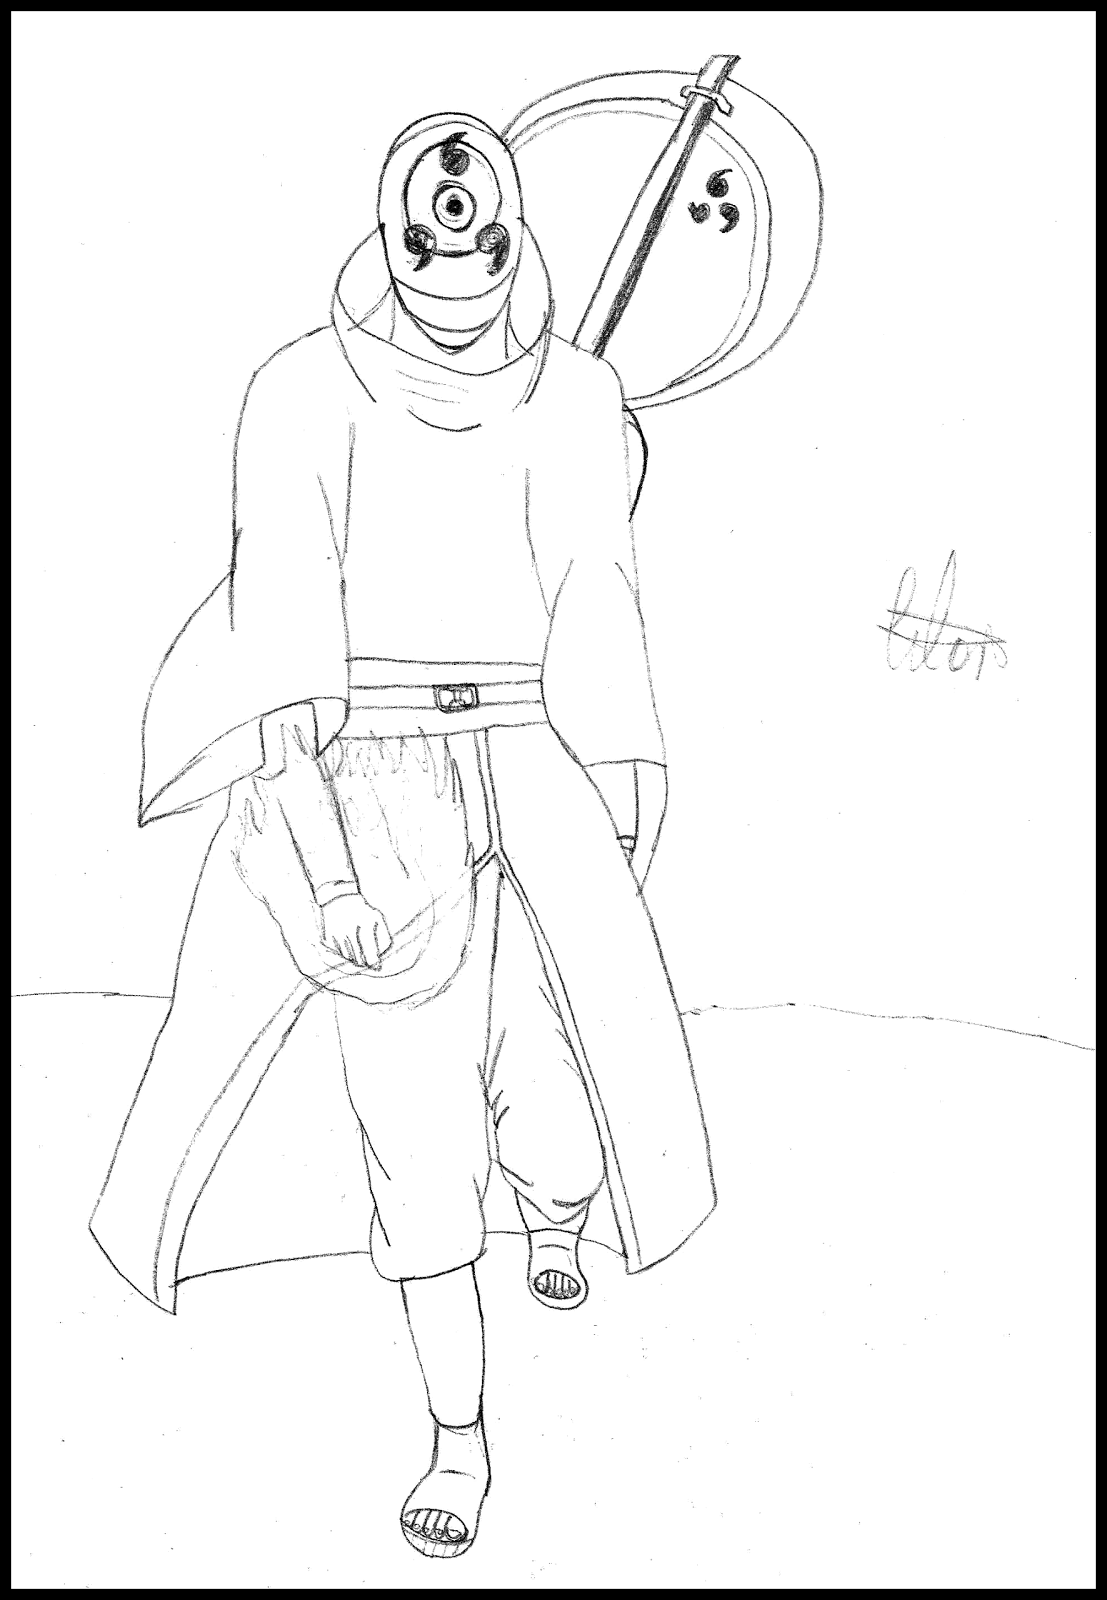 Naruto Tobi Characters Coloring Pages (Page 1) - Line.17QQ.com